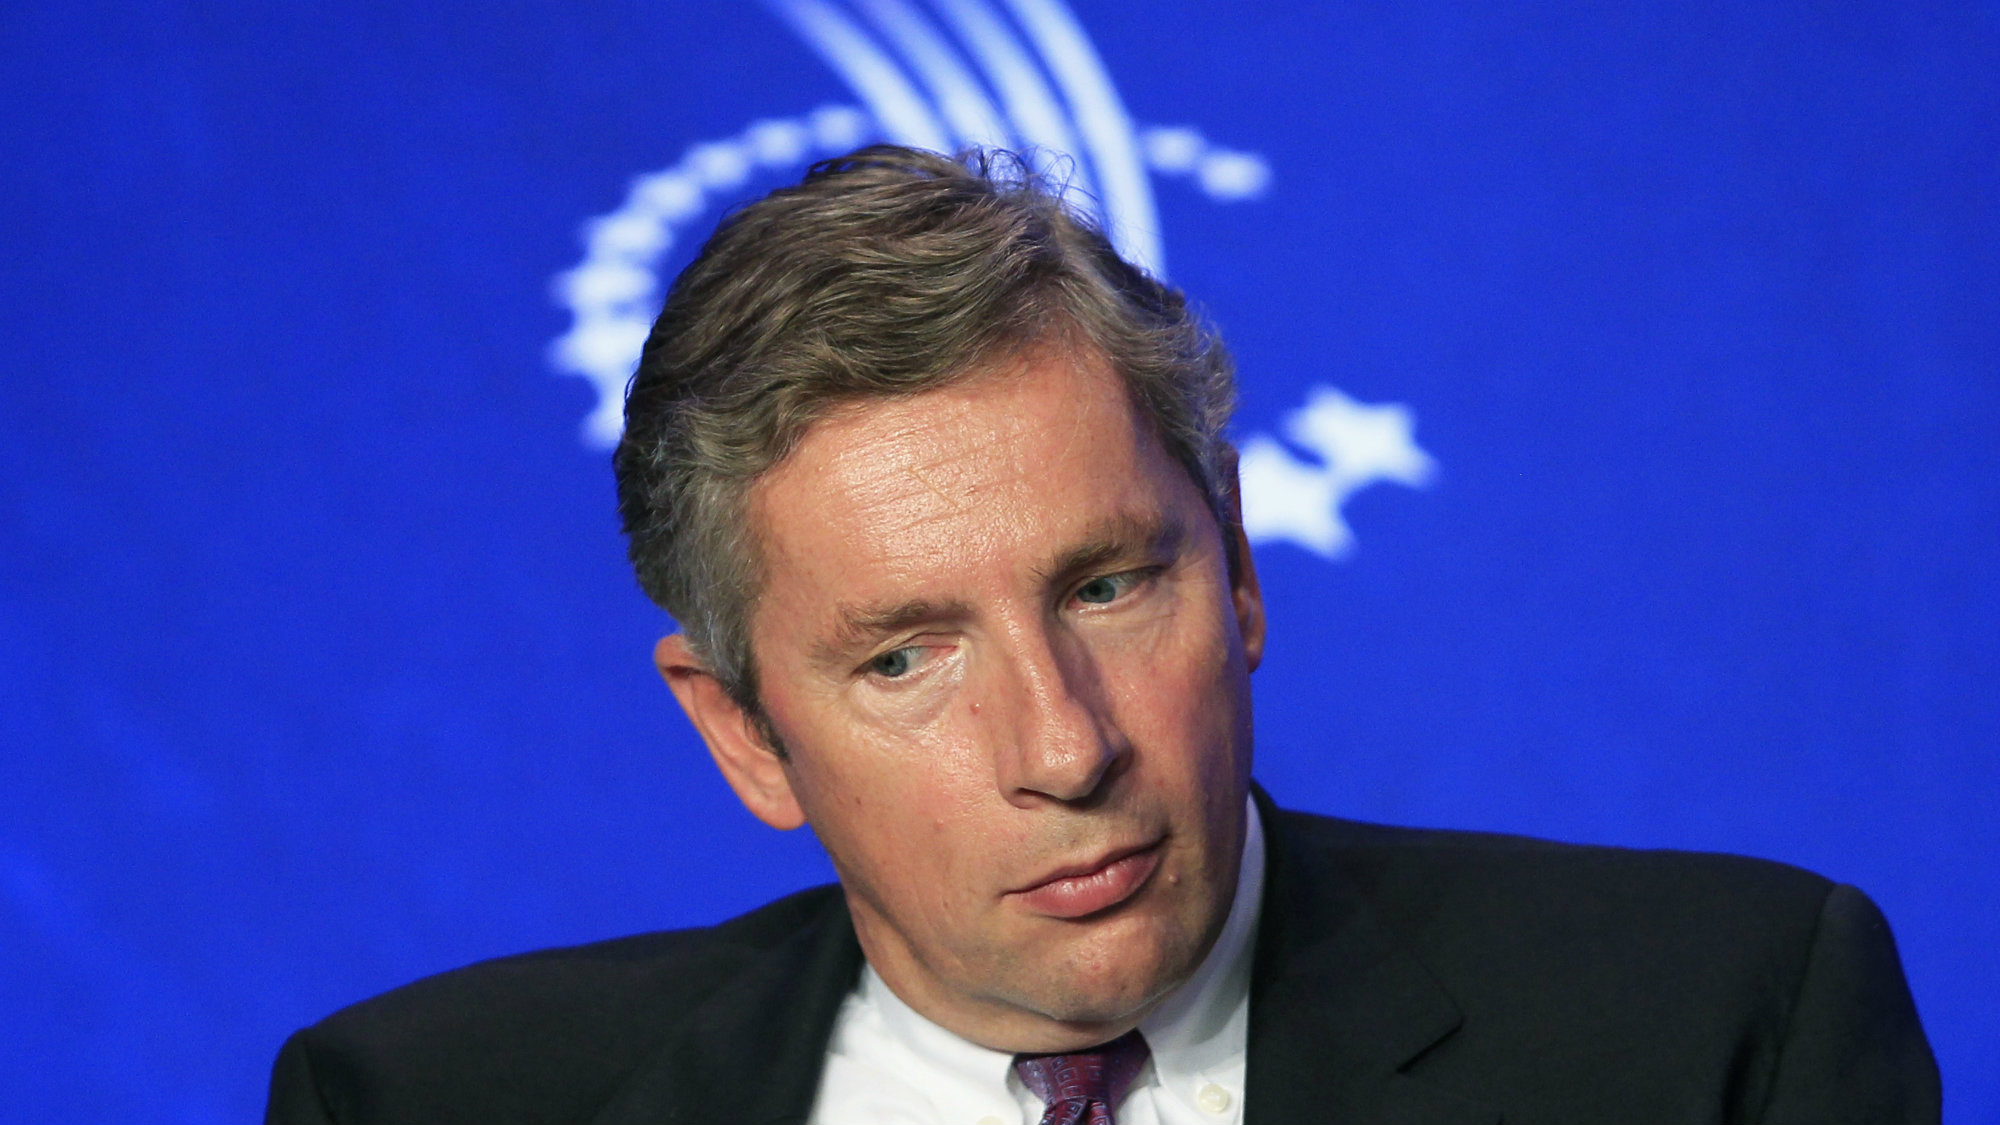 Klaus Kleinfeld, CEO of Alcoa Inc., takes part in a discussion regarding supply chains of opportunity during the Clinton Global Initiative in New York September 22, 2010.